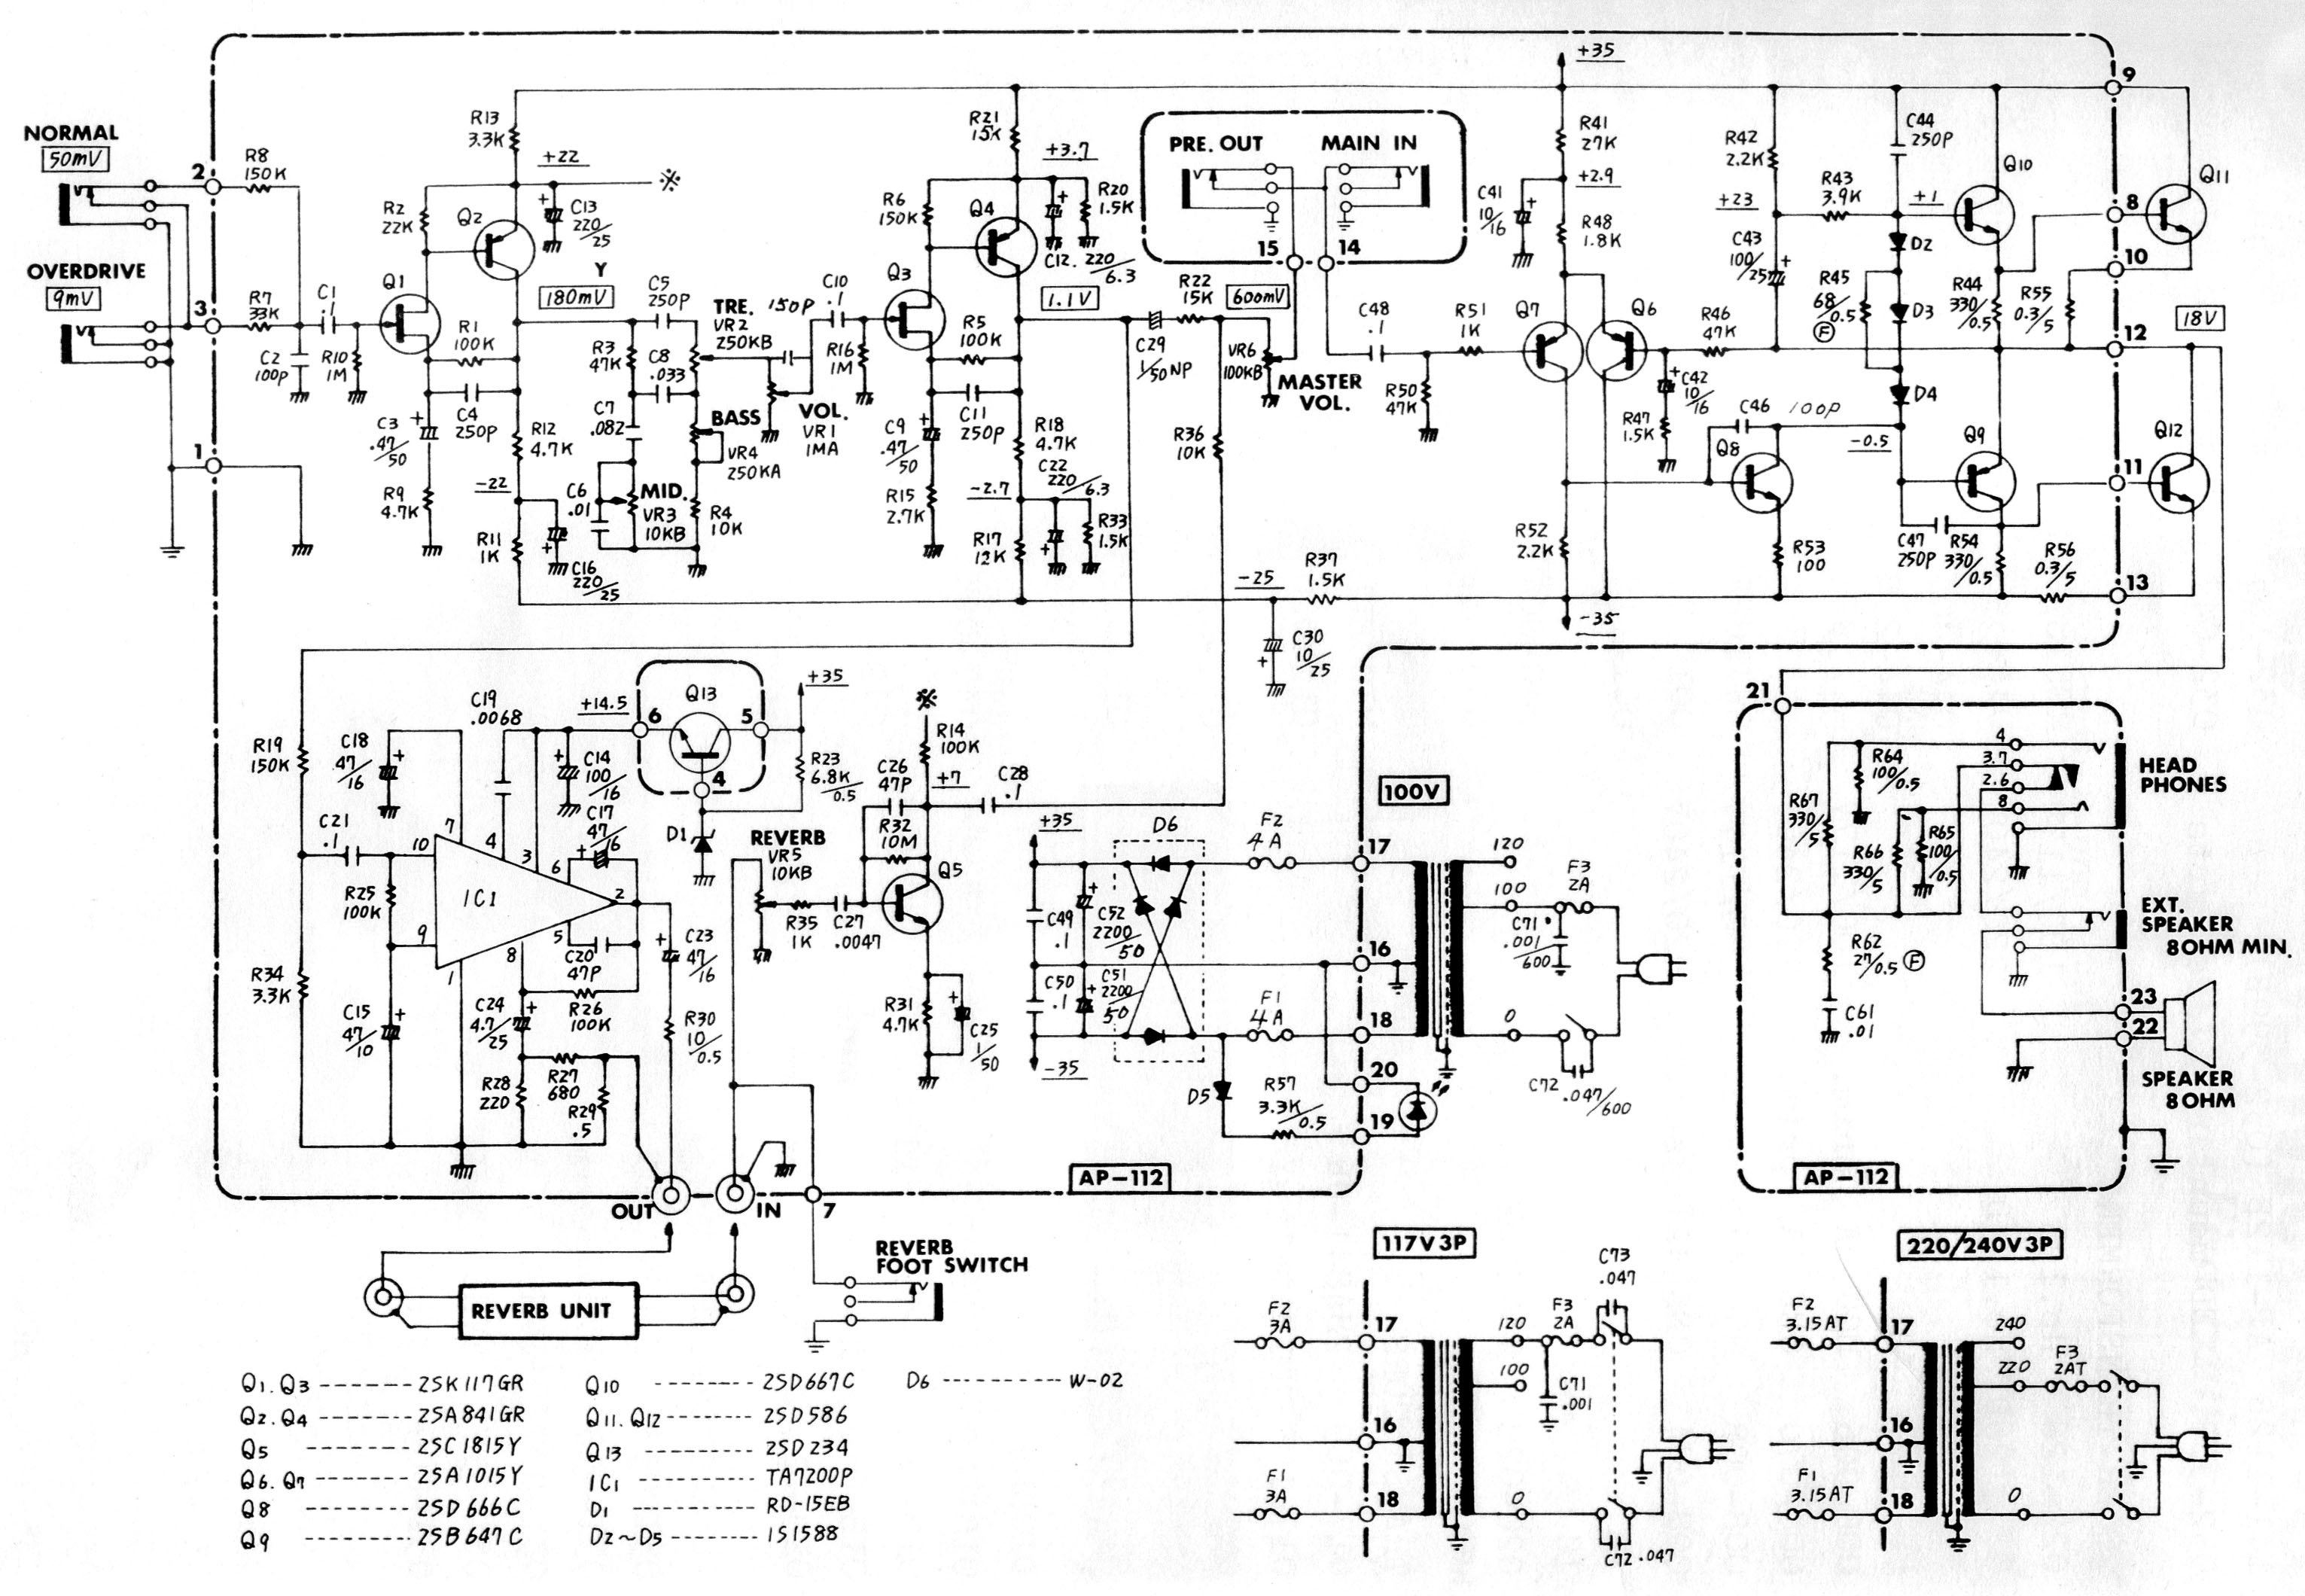 jupiter 8 schematic  u2013 the wiring diagram  u2013 readingrat net